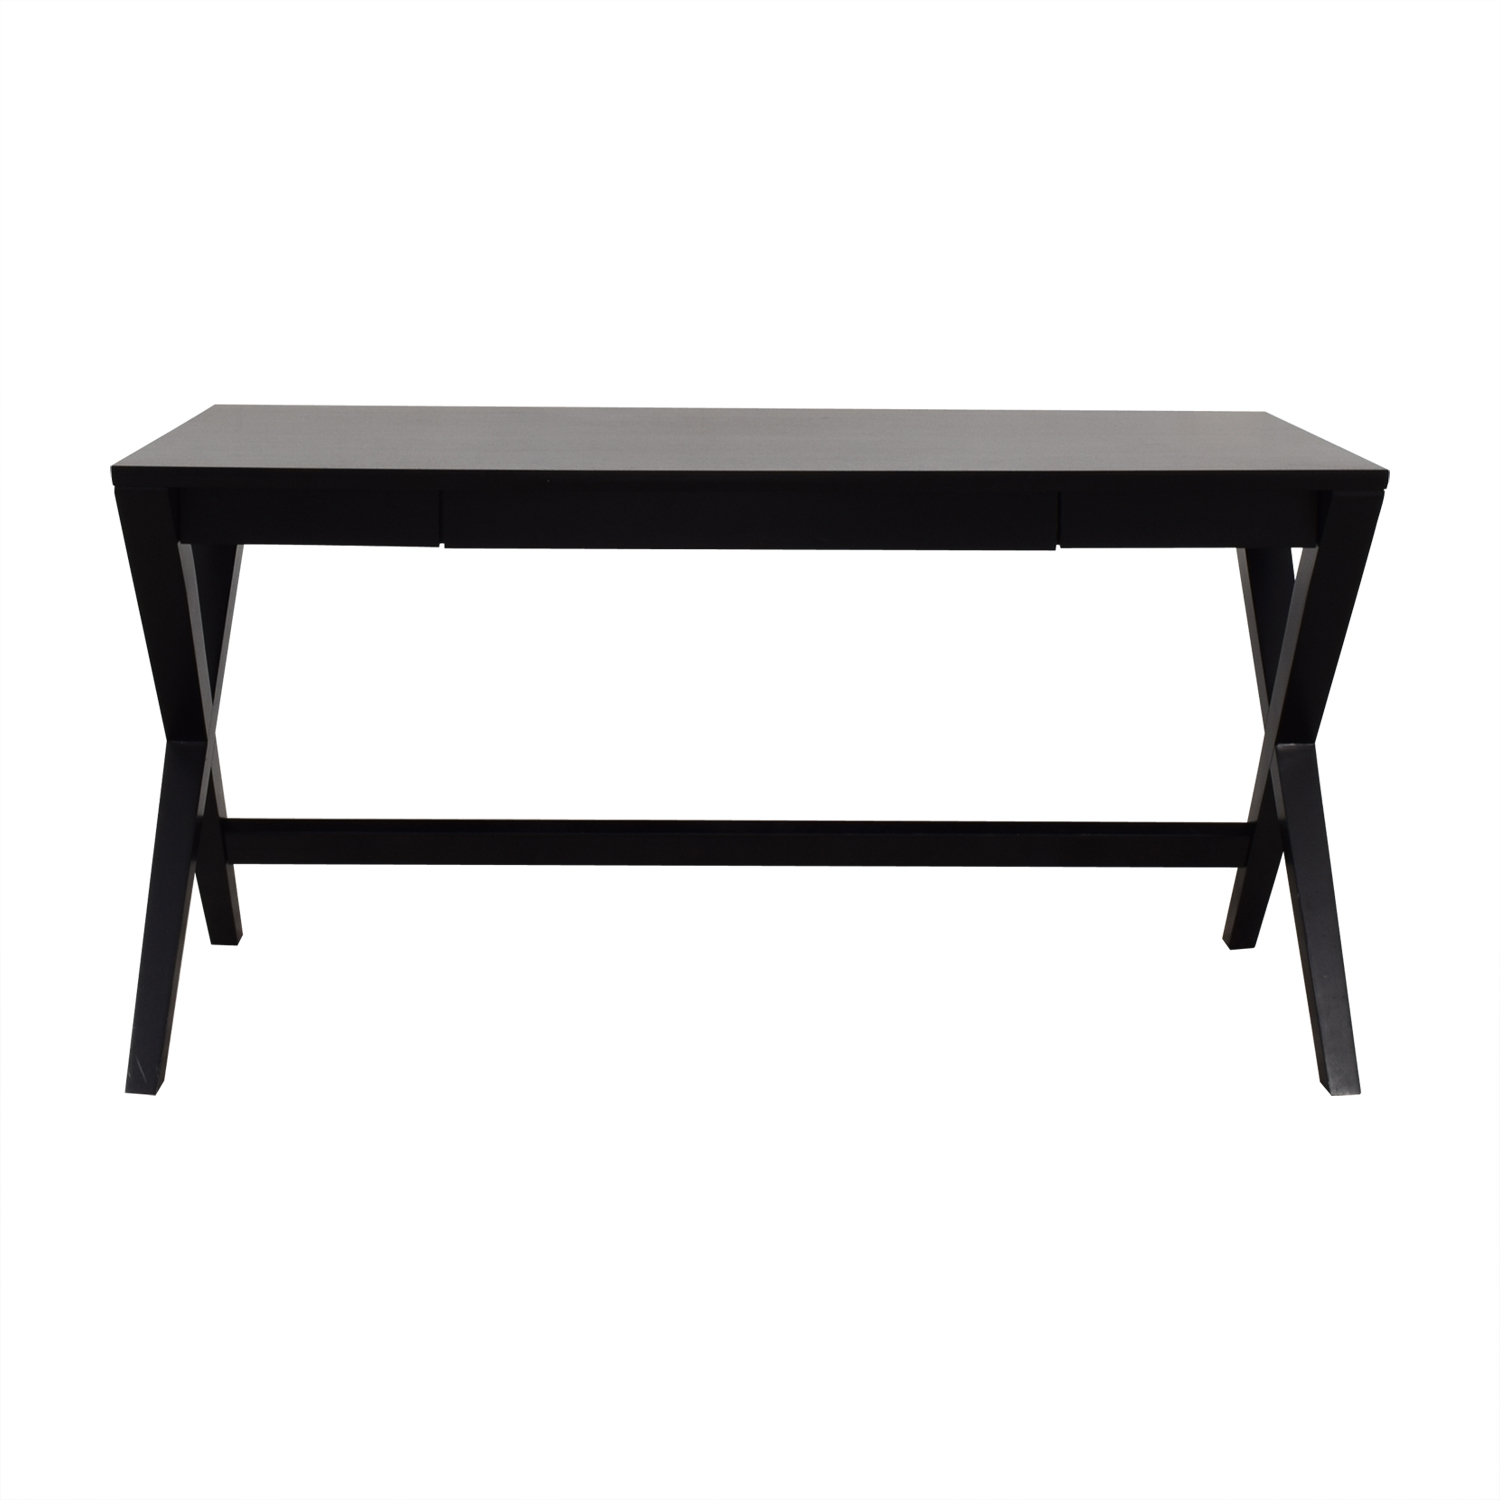 Crate & Barrel Crate & Barrel Desk used